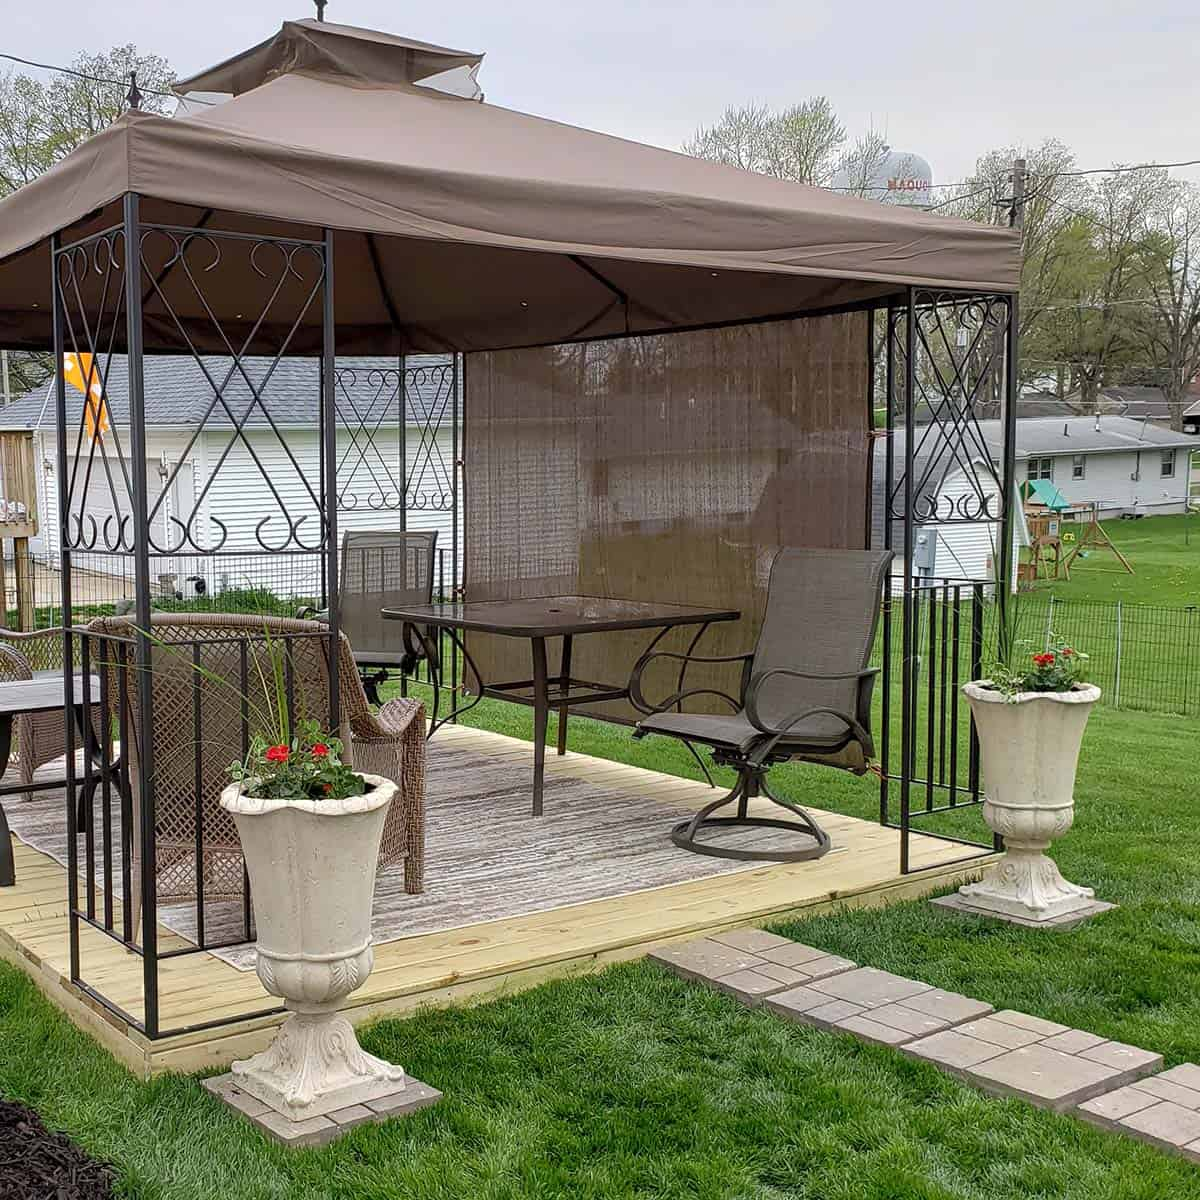 Gazebo with brick pavers and flowers